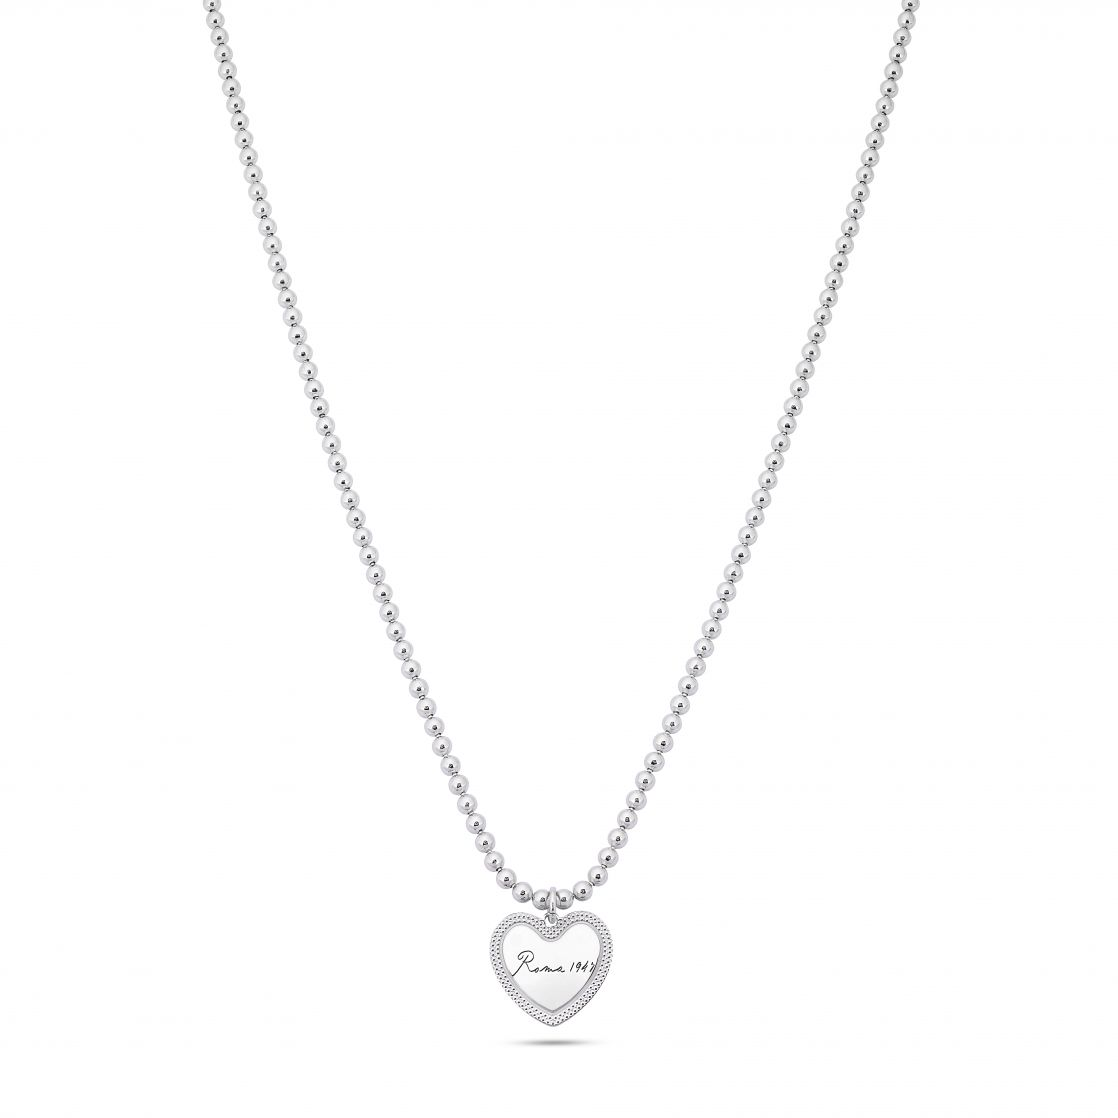 NECKLACE WITH HEART-SHAPED PENDANT